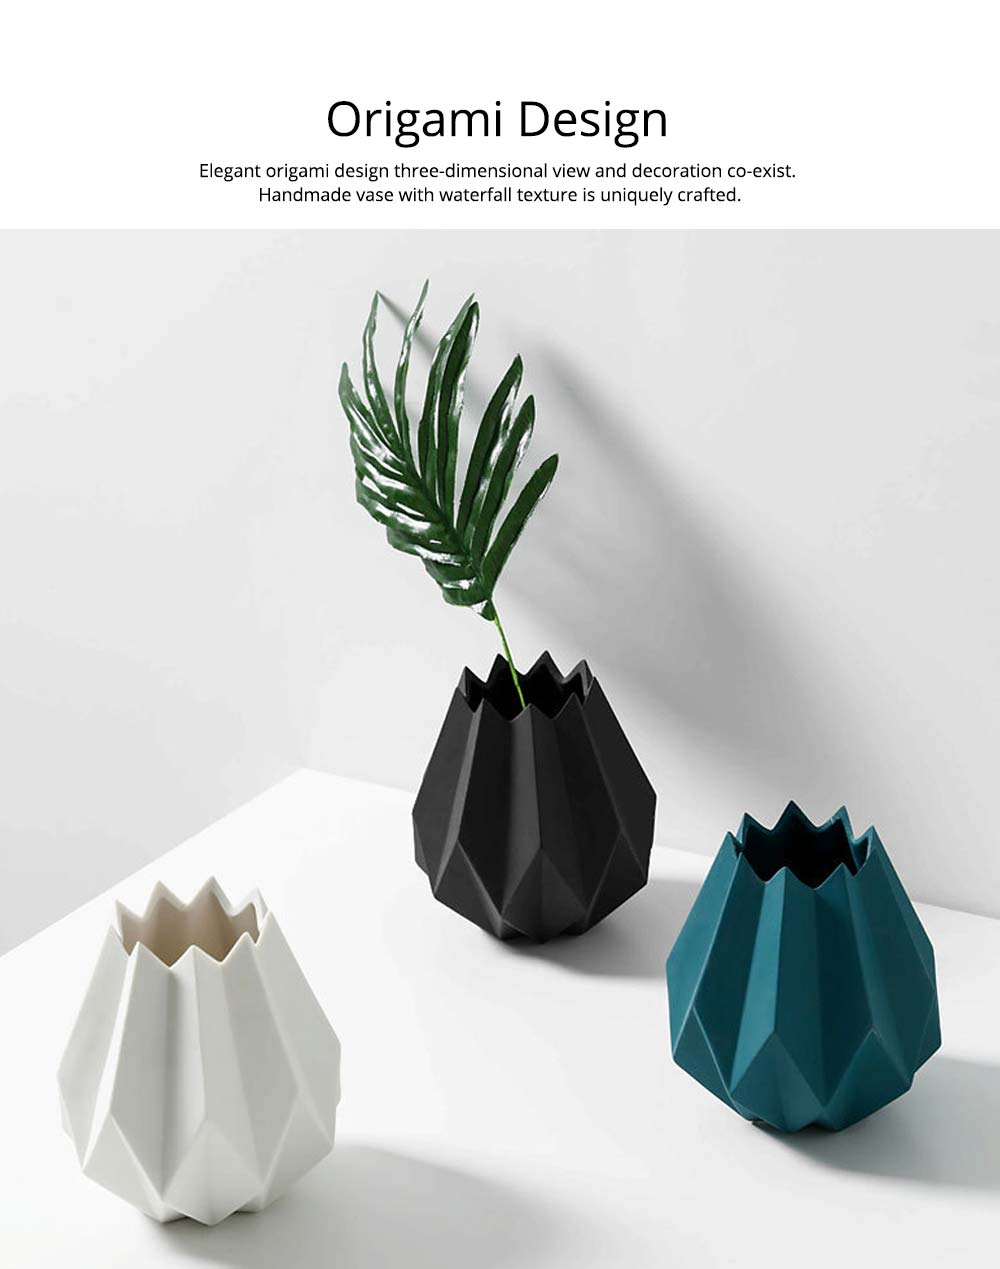 Creative Origami Vase, Ceramic Small Planter Pot, Home Office Desktop Vase Decor 1